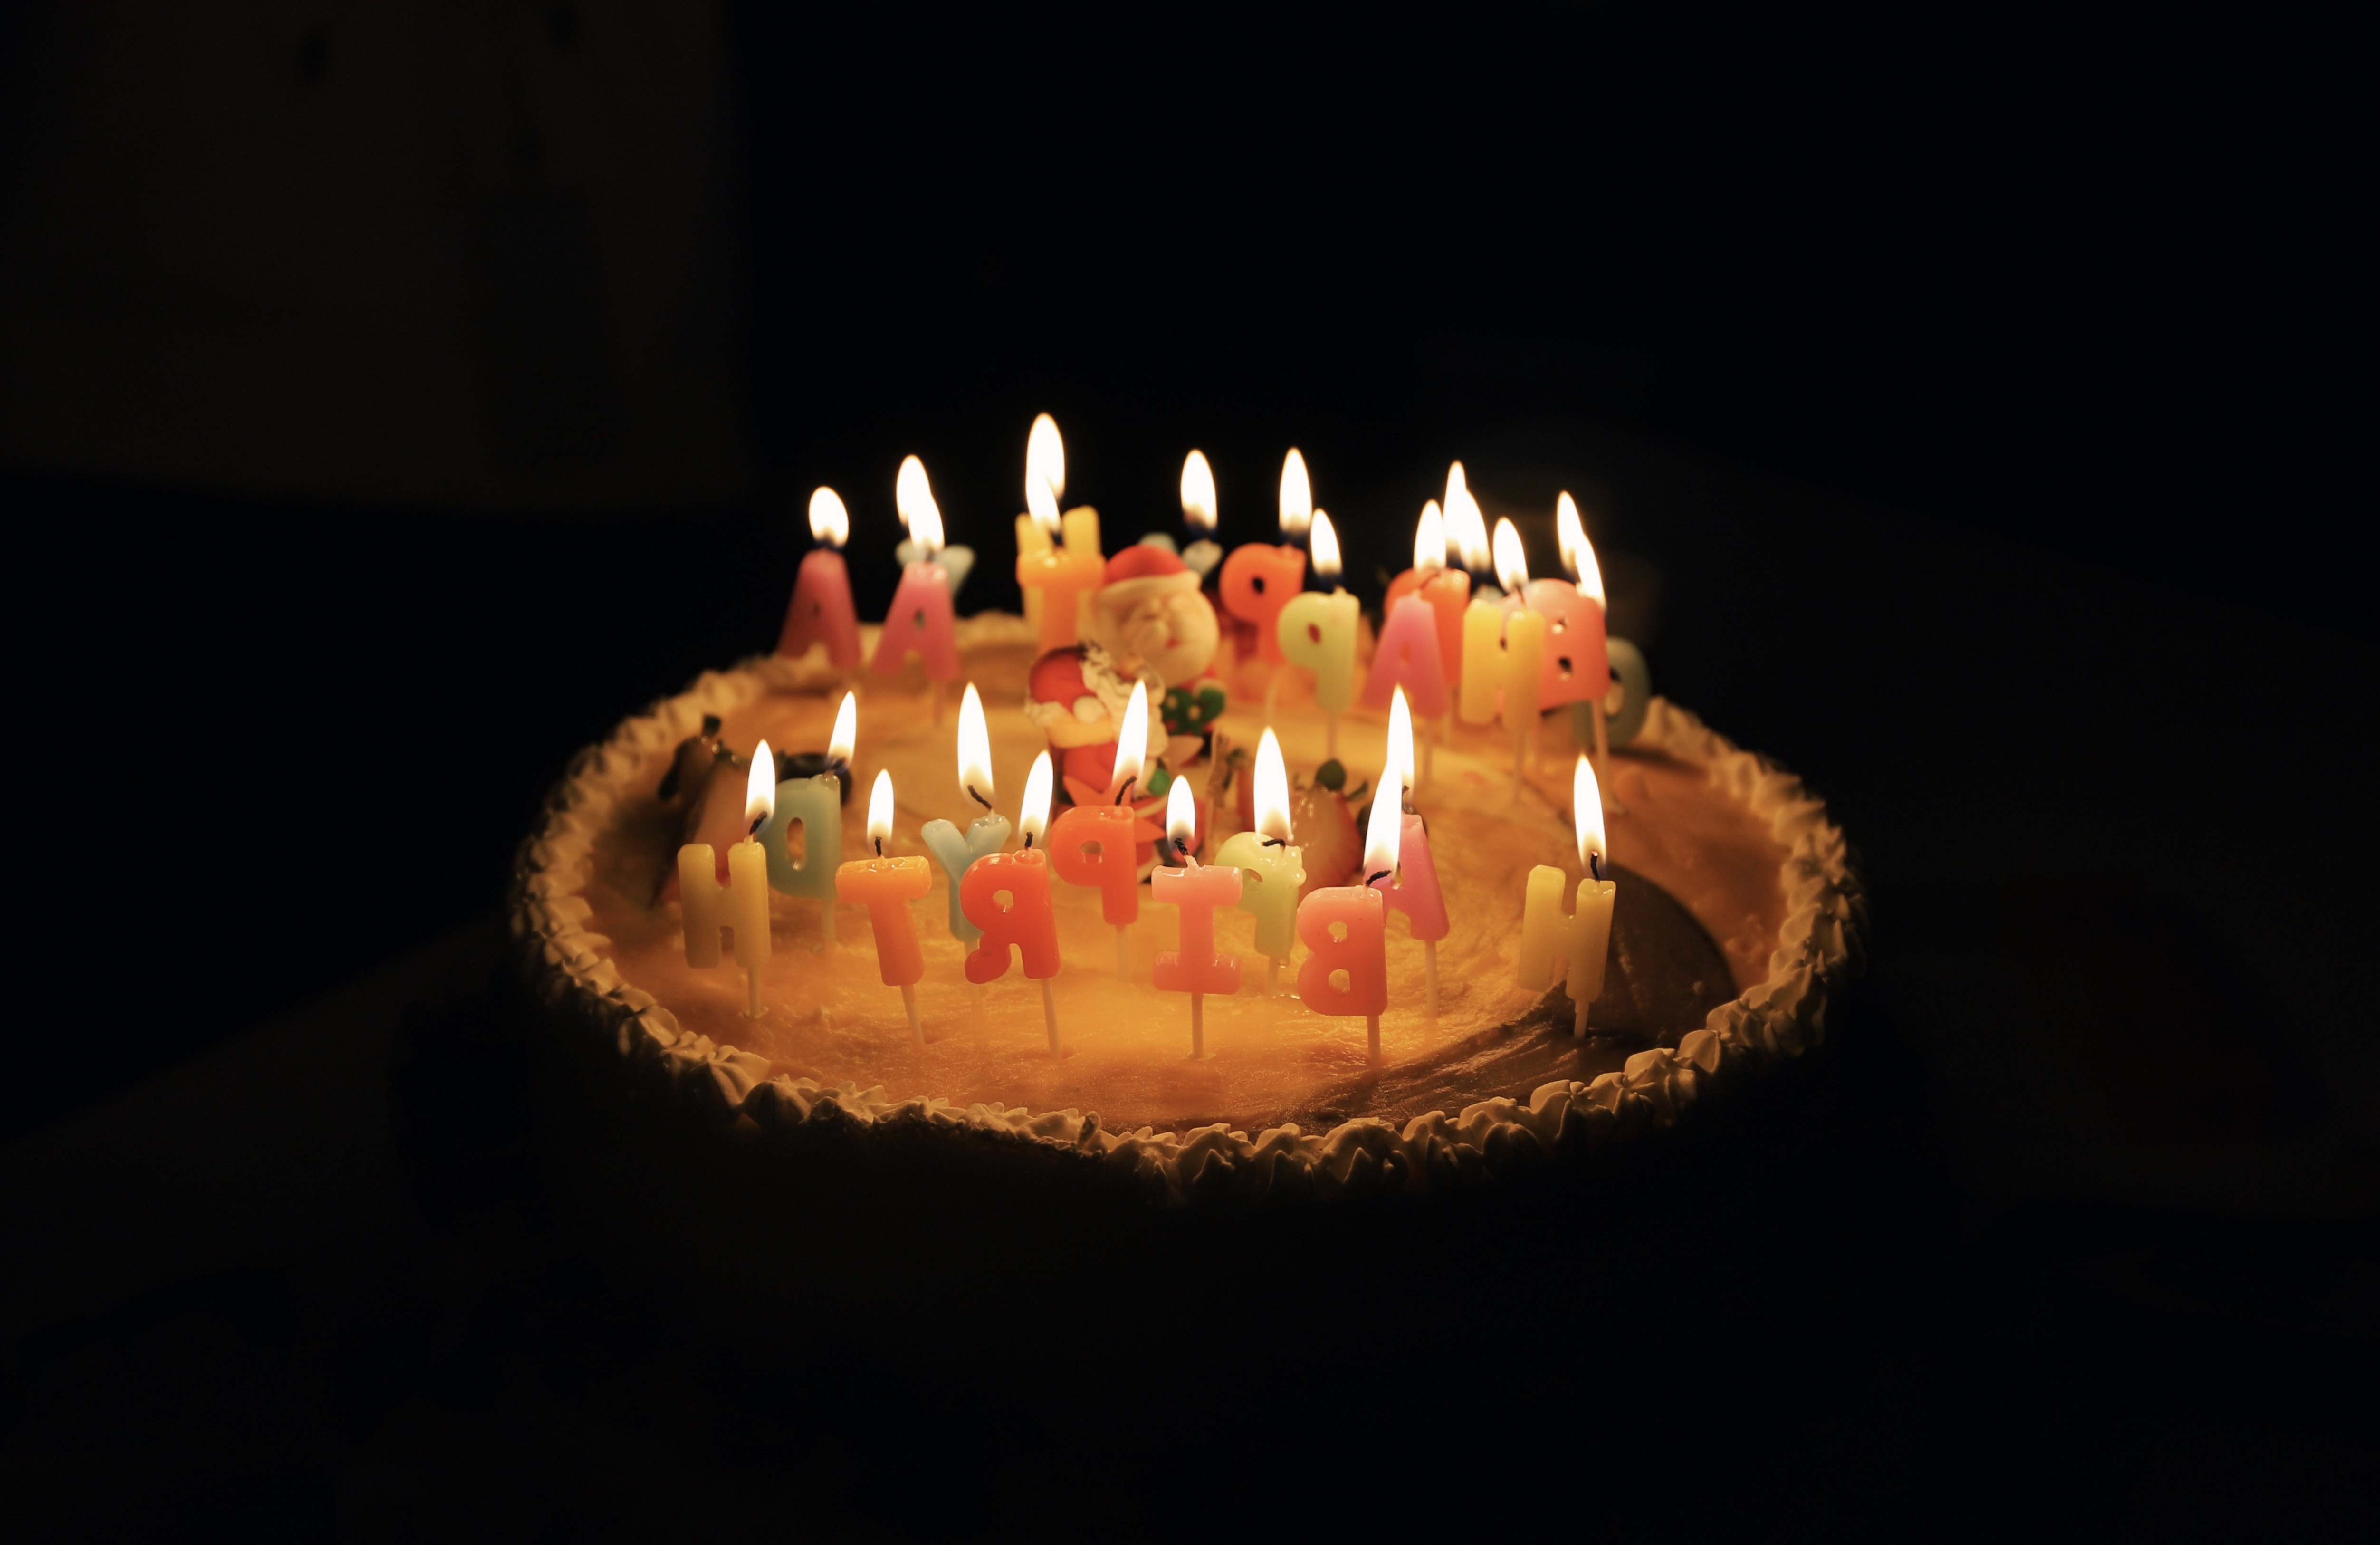 Free Birthday Pictures ~ Best birthday images download free images on unsplash